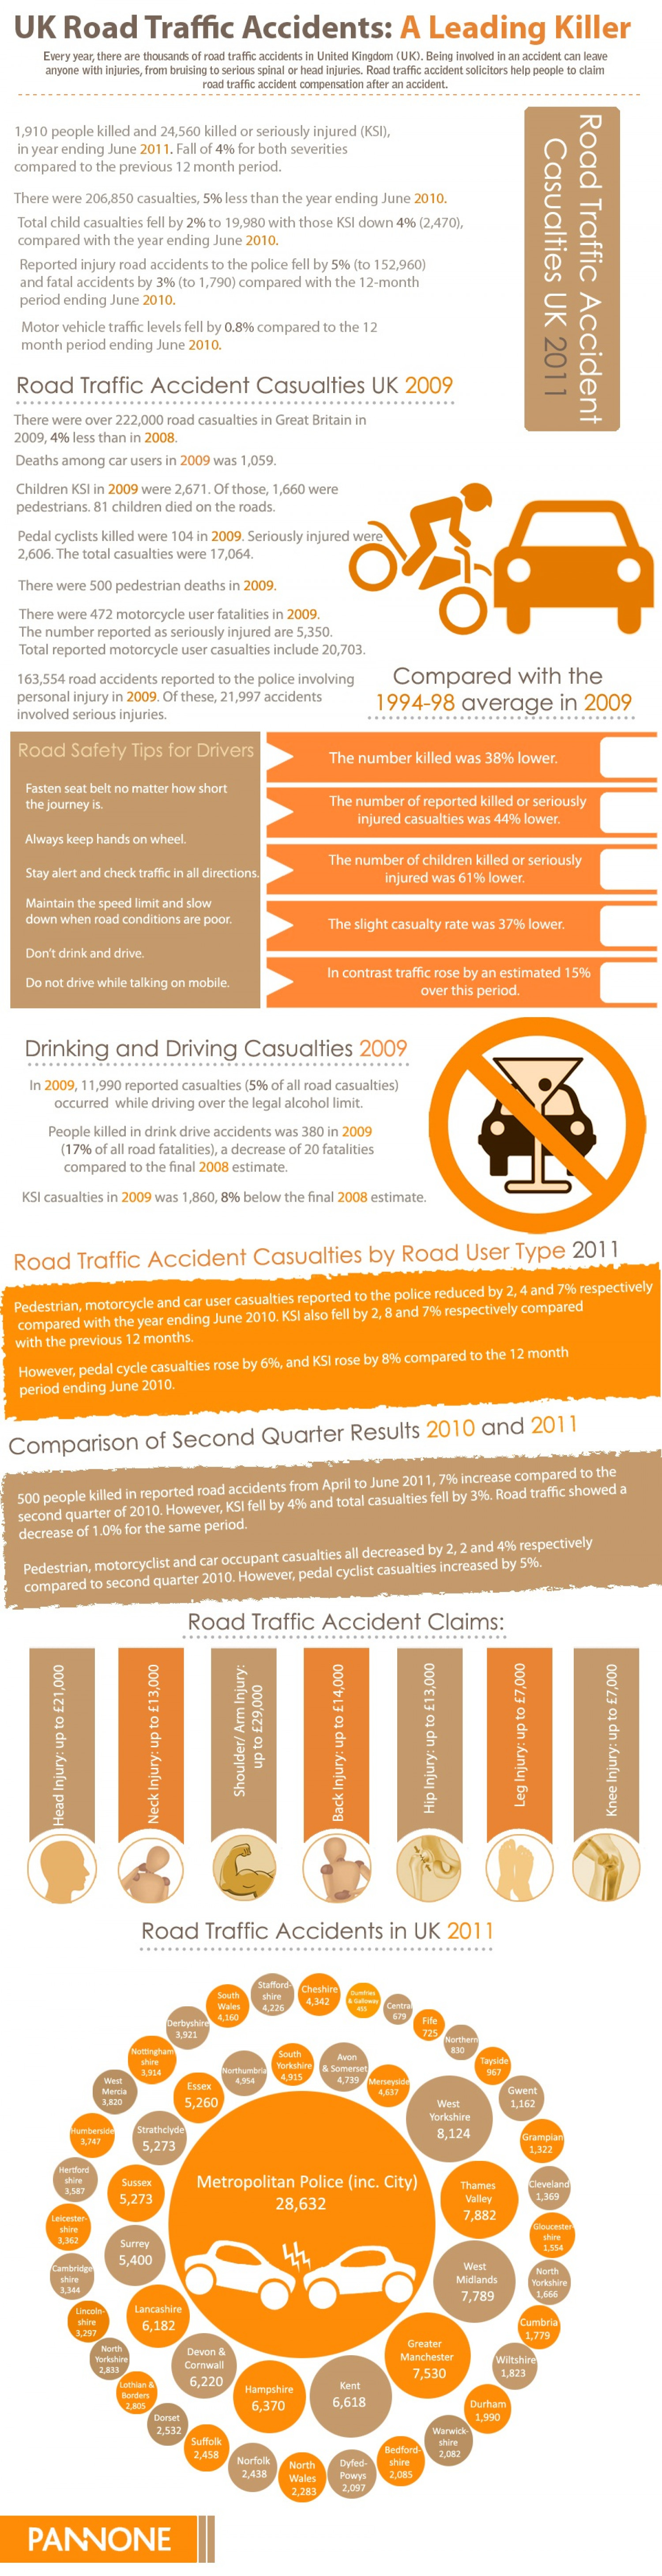 Road Traffic Accidents UK Infographic